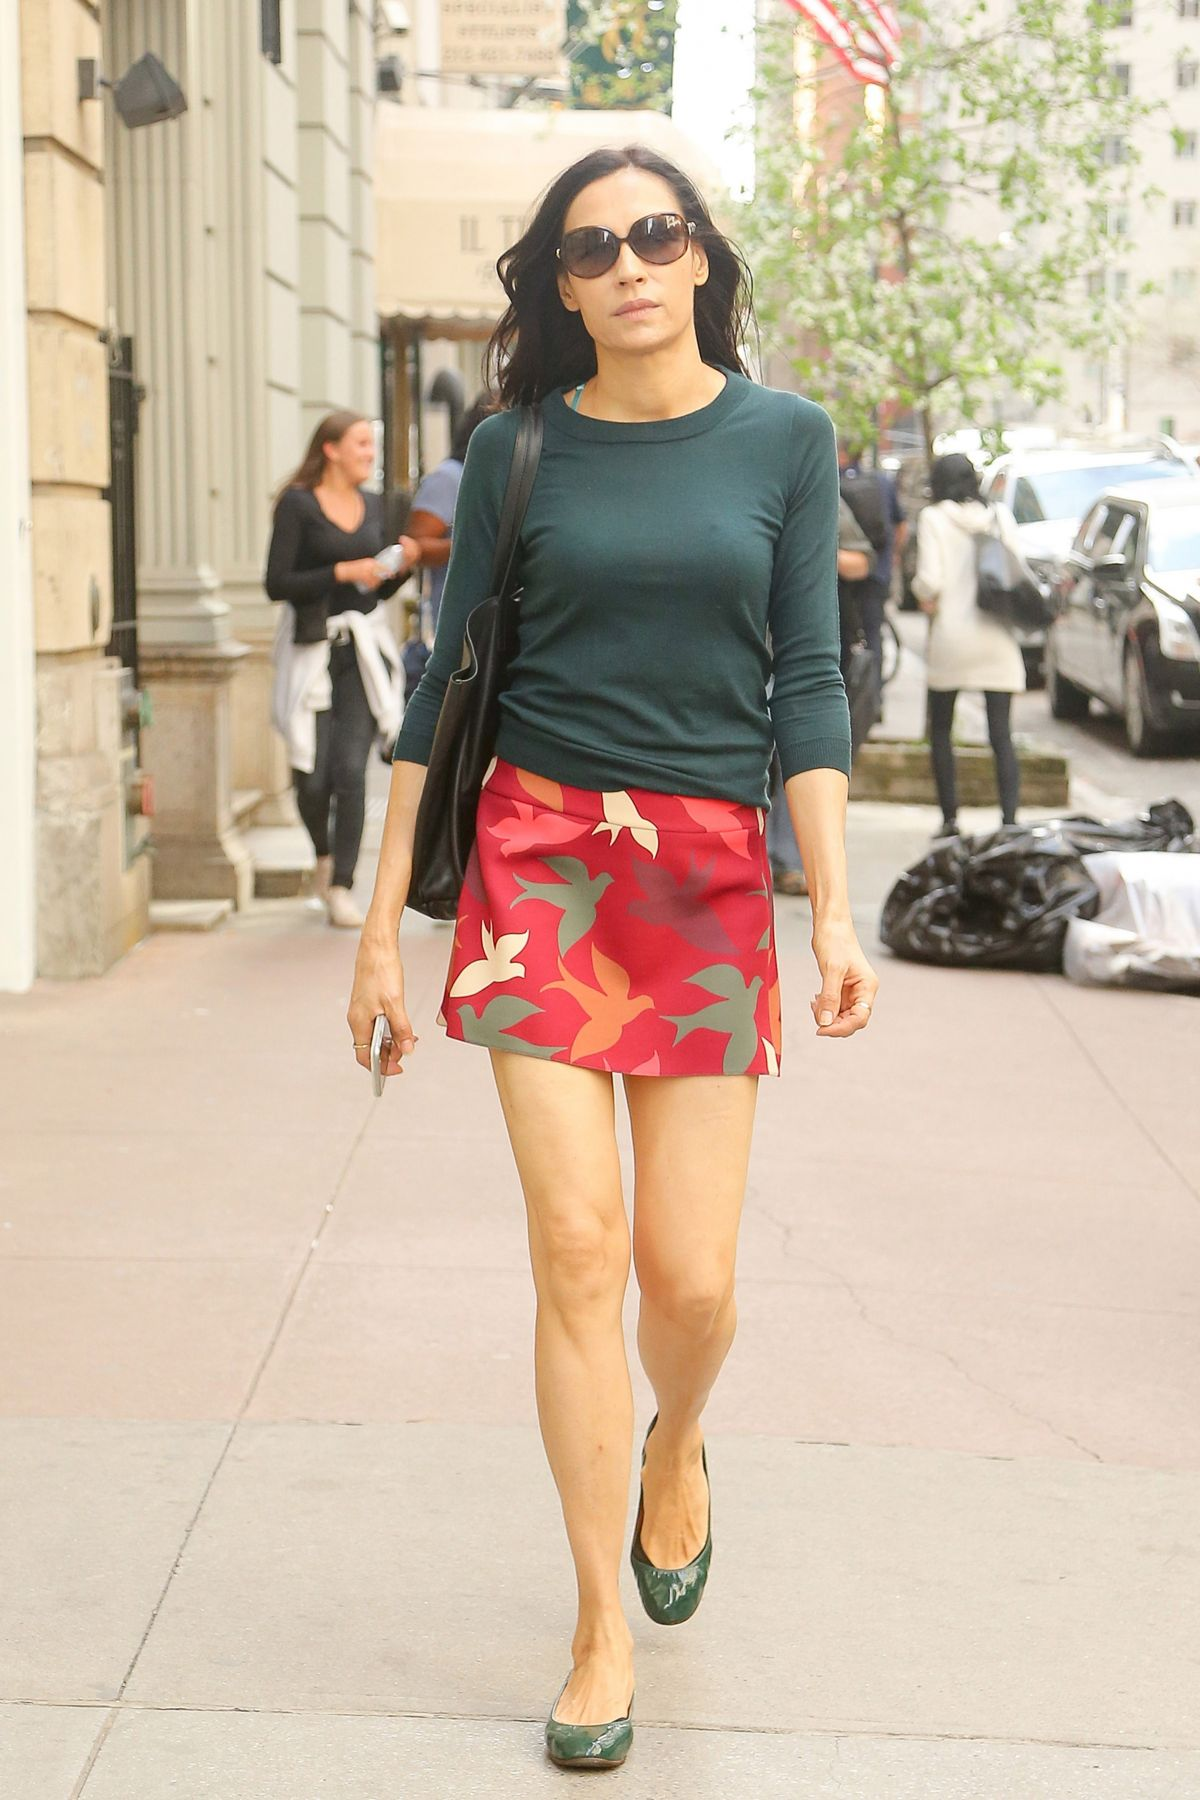 FAMKE JANSSEN in Short Skirt Out in New York 04/17/2017 ...